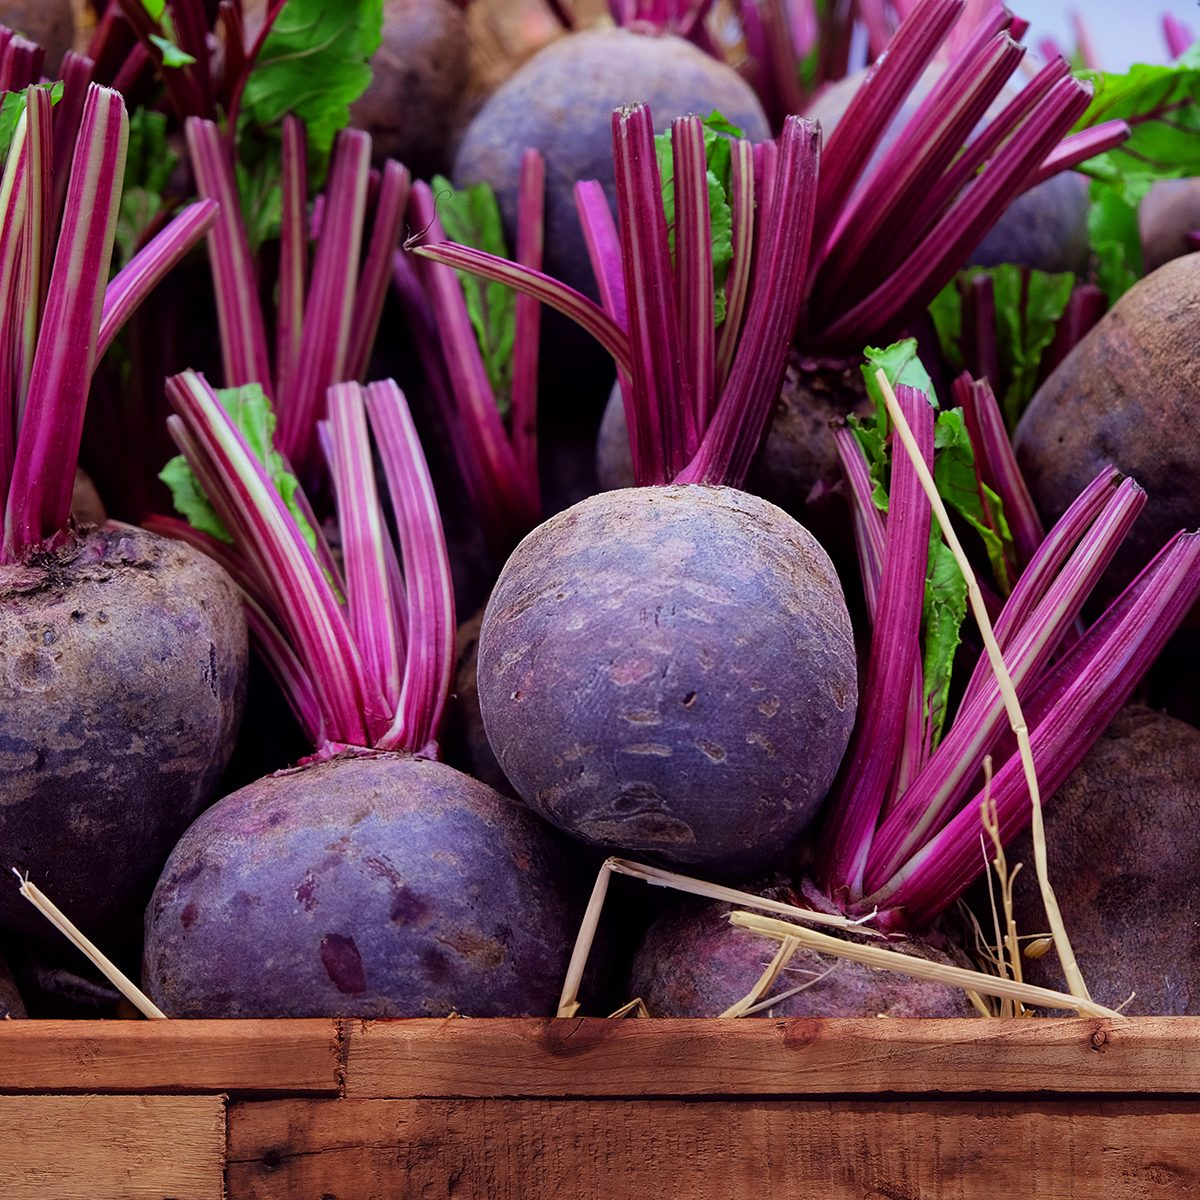 Fresh harvested beetroots in wooden crate, beets with leaves in the market